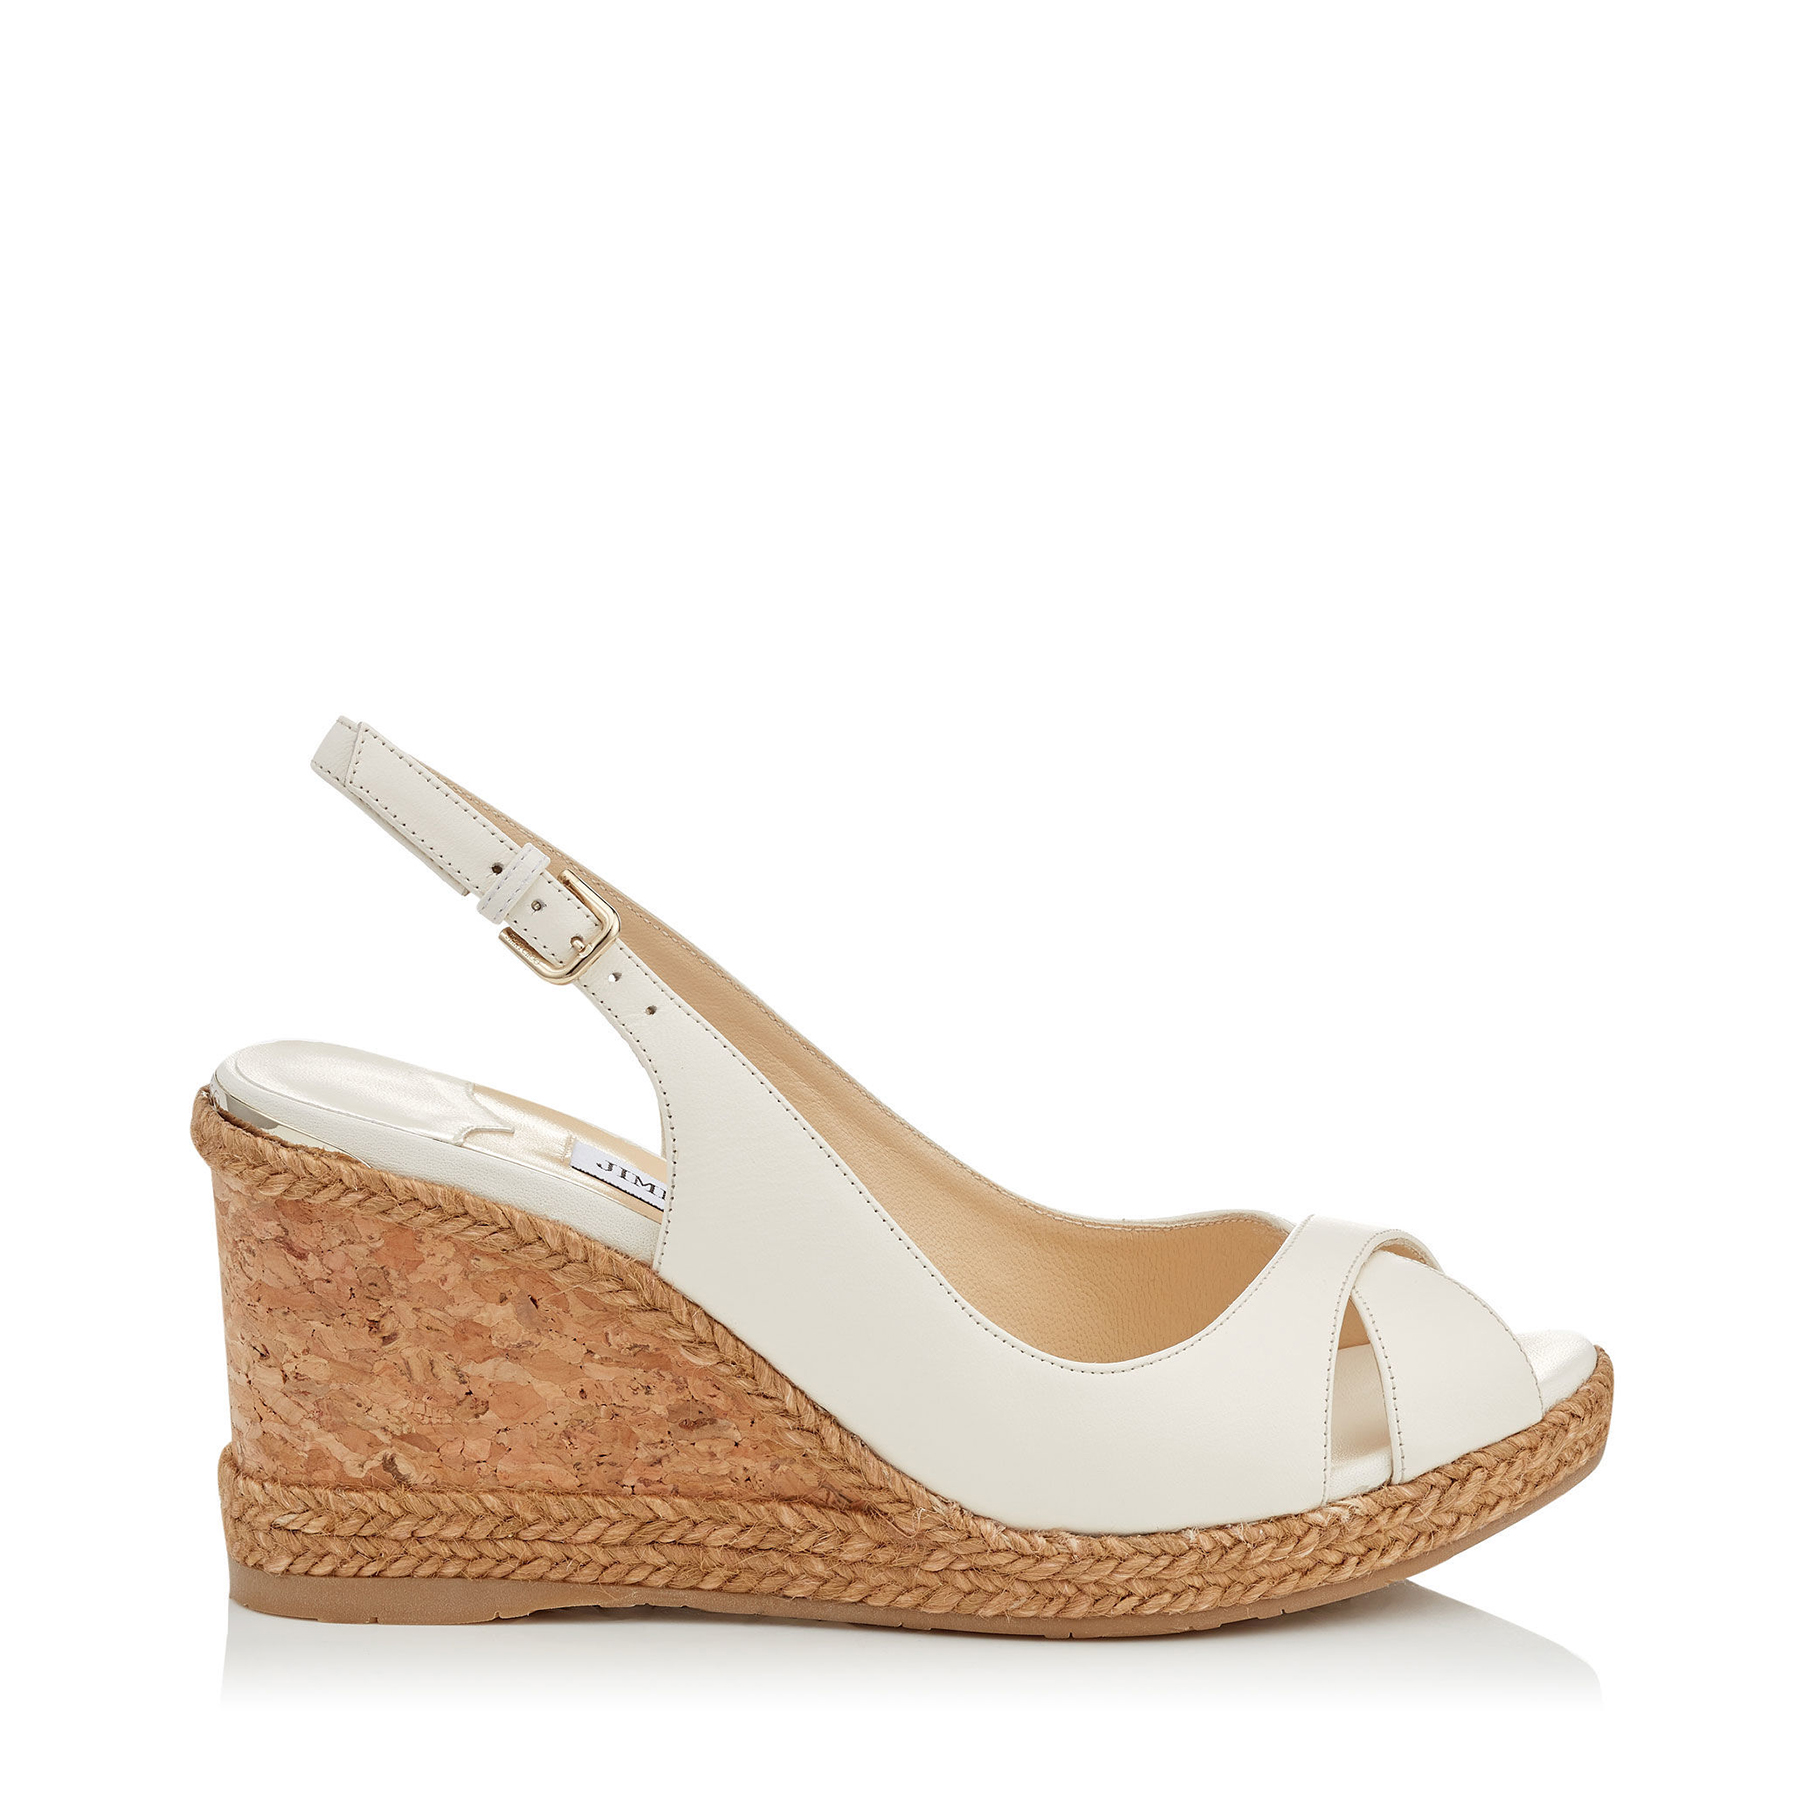 AMELY 80 Chalk Nappa Leather Sandals with Braid trim Wedge by Jimmy Choo